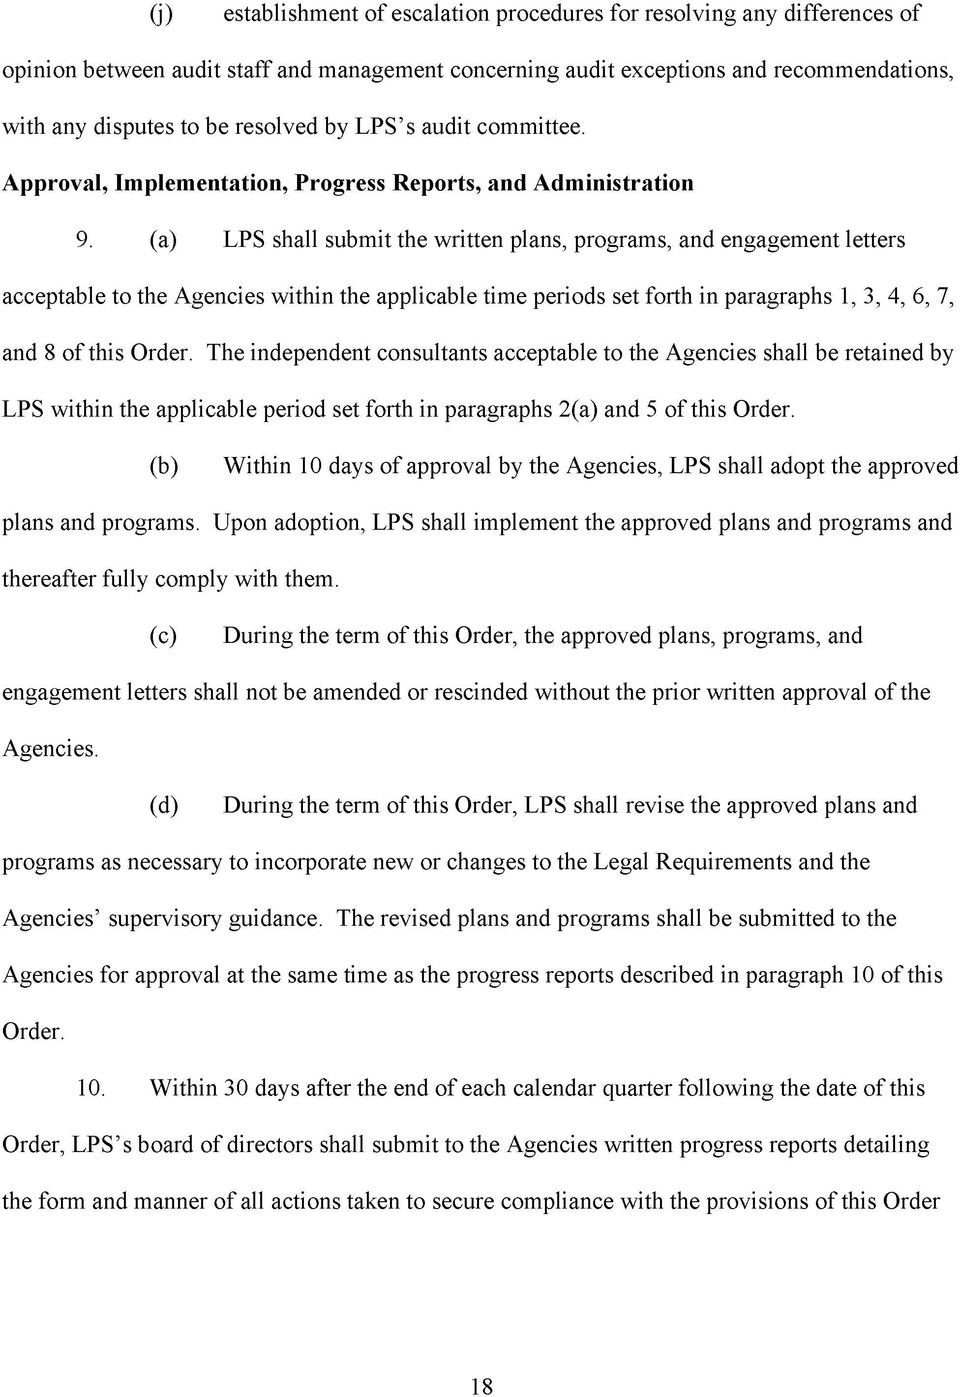 (a) LPS shall submit the written plans, programs, and engagement letters acceptable to the Agencies within the applicable time periods set forth in paragraphs 1, 3, 4, 6, 7, and 8 of this Order.